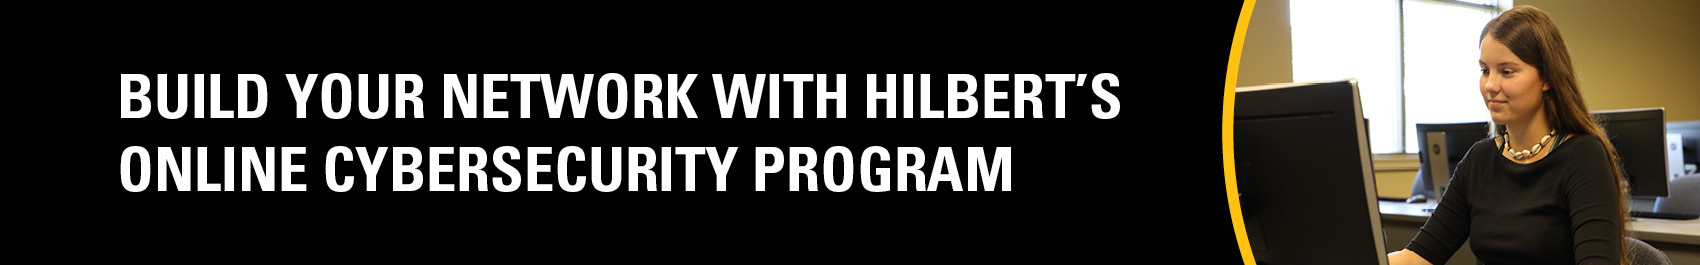 Build your network with Hilbert's online cybersecurity program